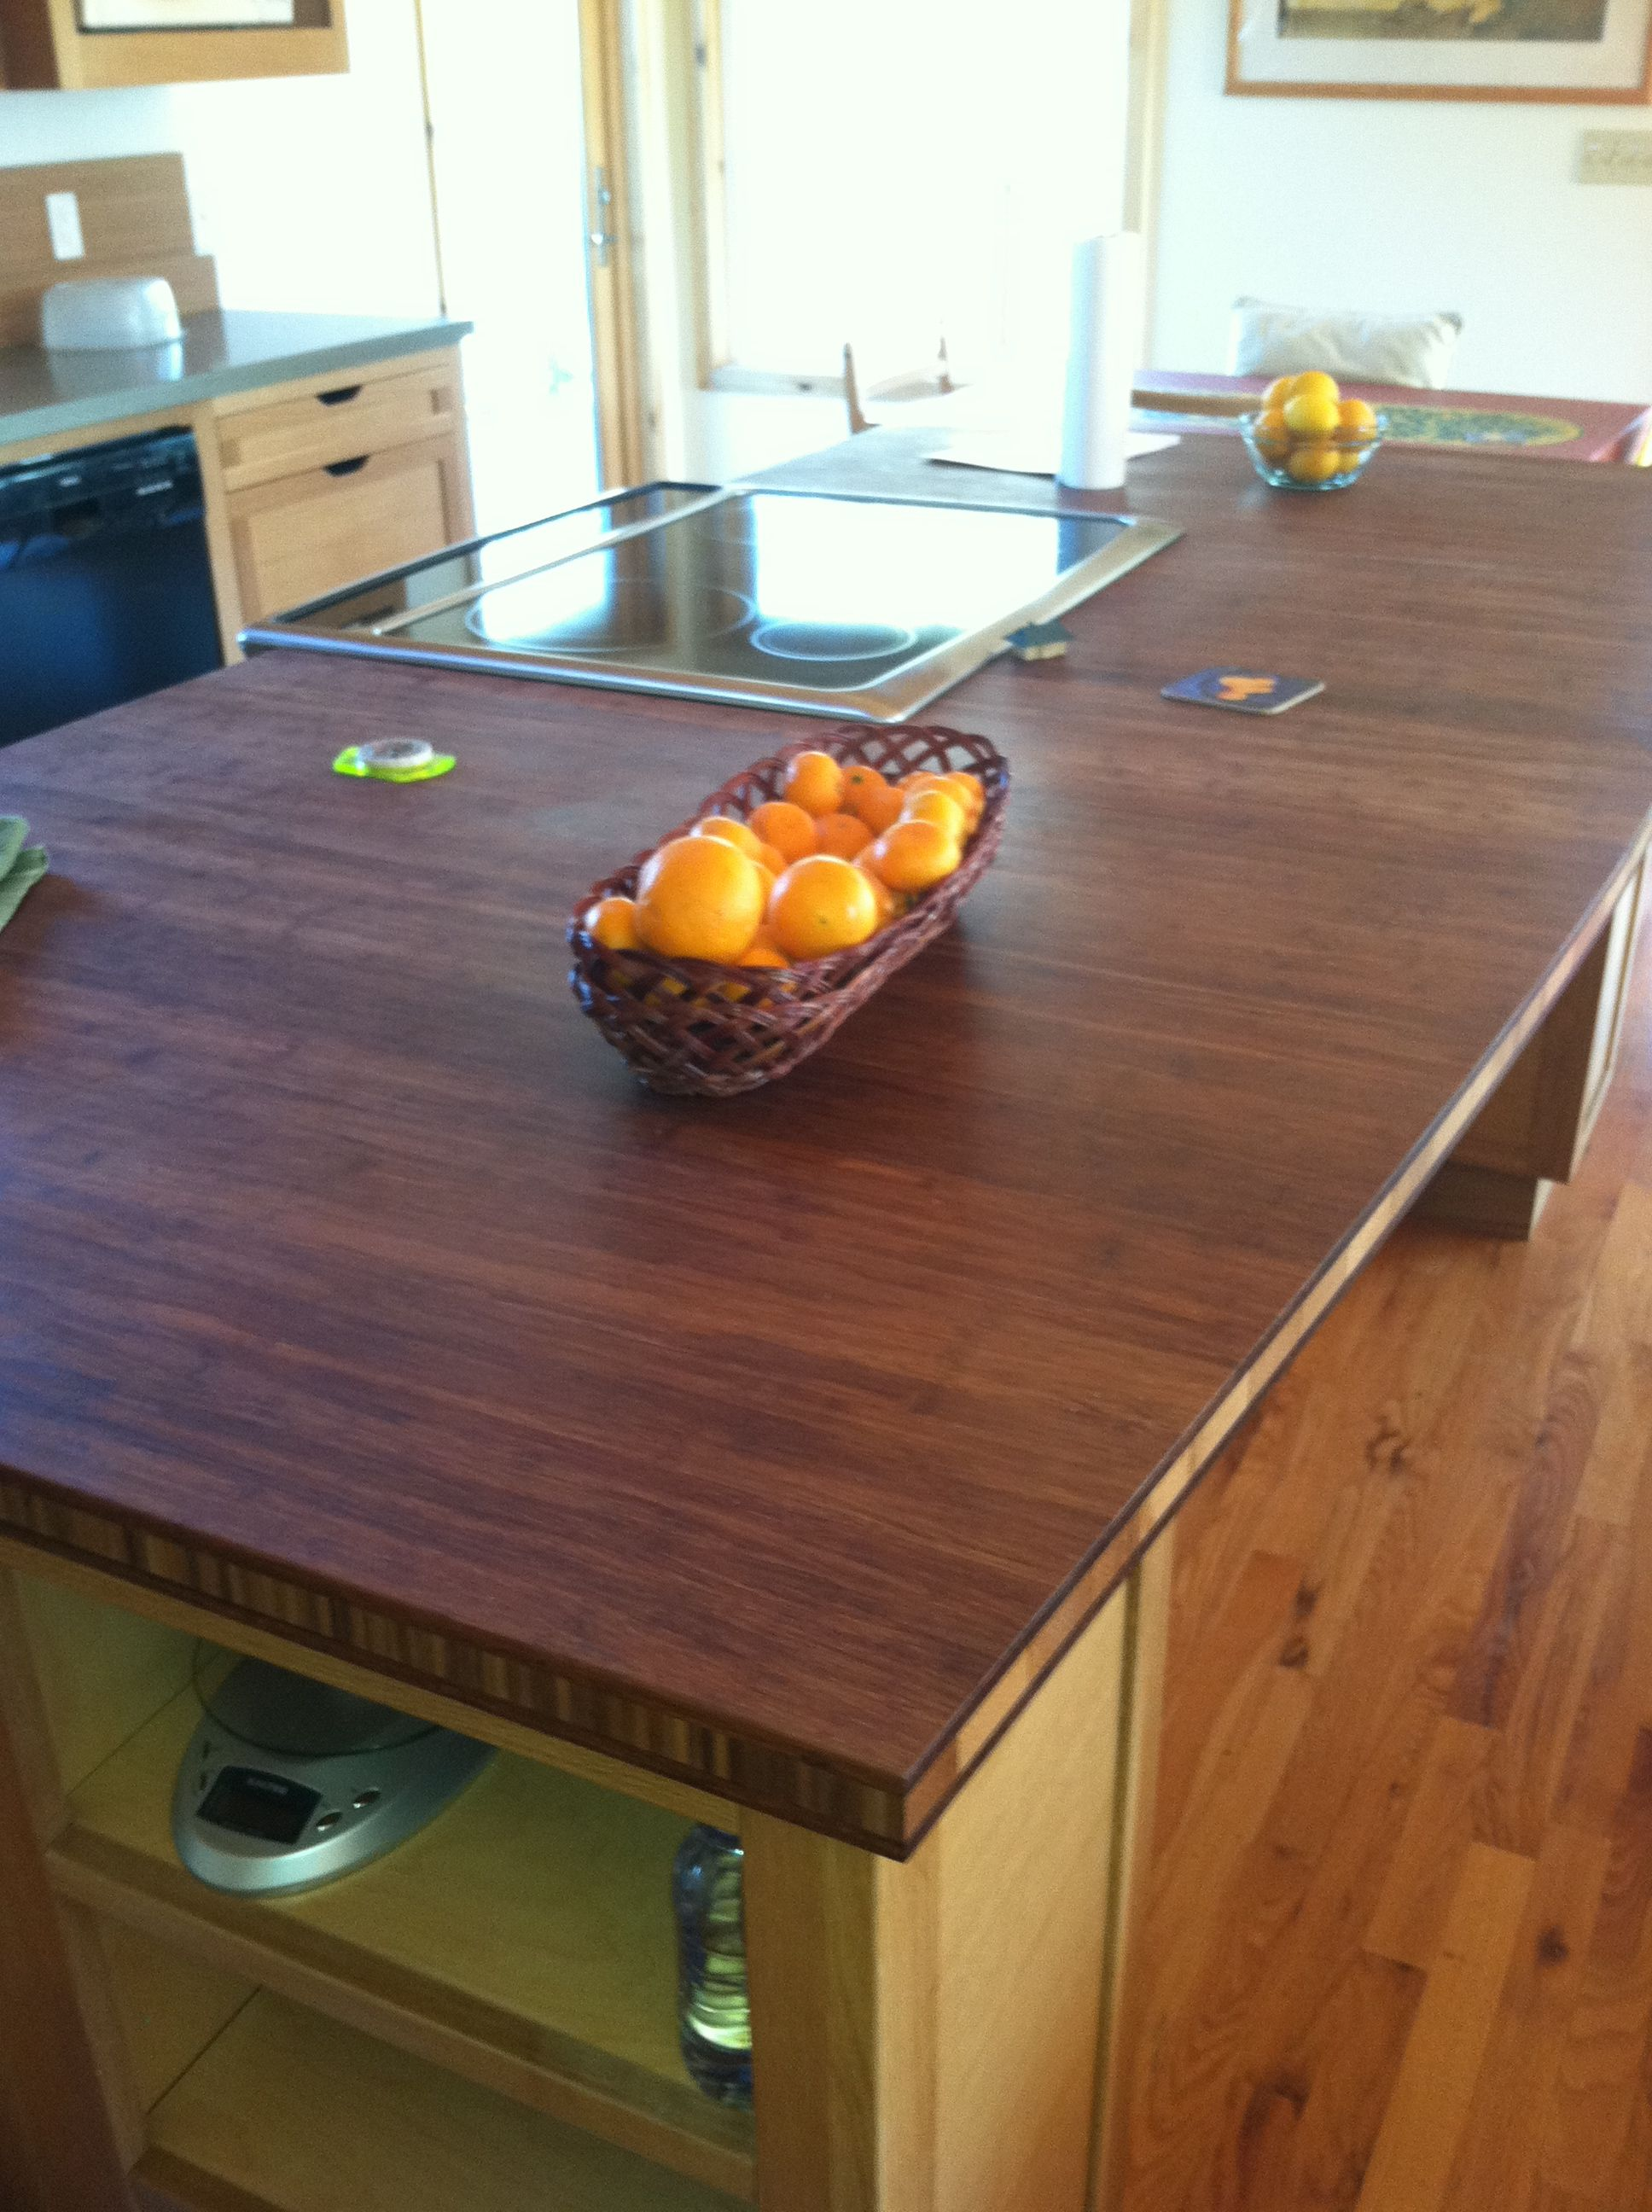 Strand Woven Bamboo Counter Top Material Used For This Island Top Is A Focal Point In This Eco Friendly Kitchen Sustainable Building Materials Kitchen Remodel